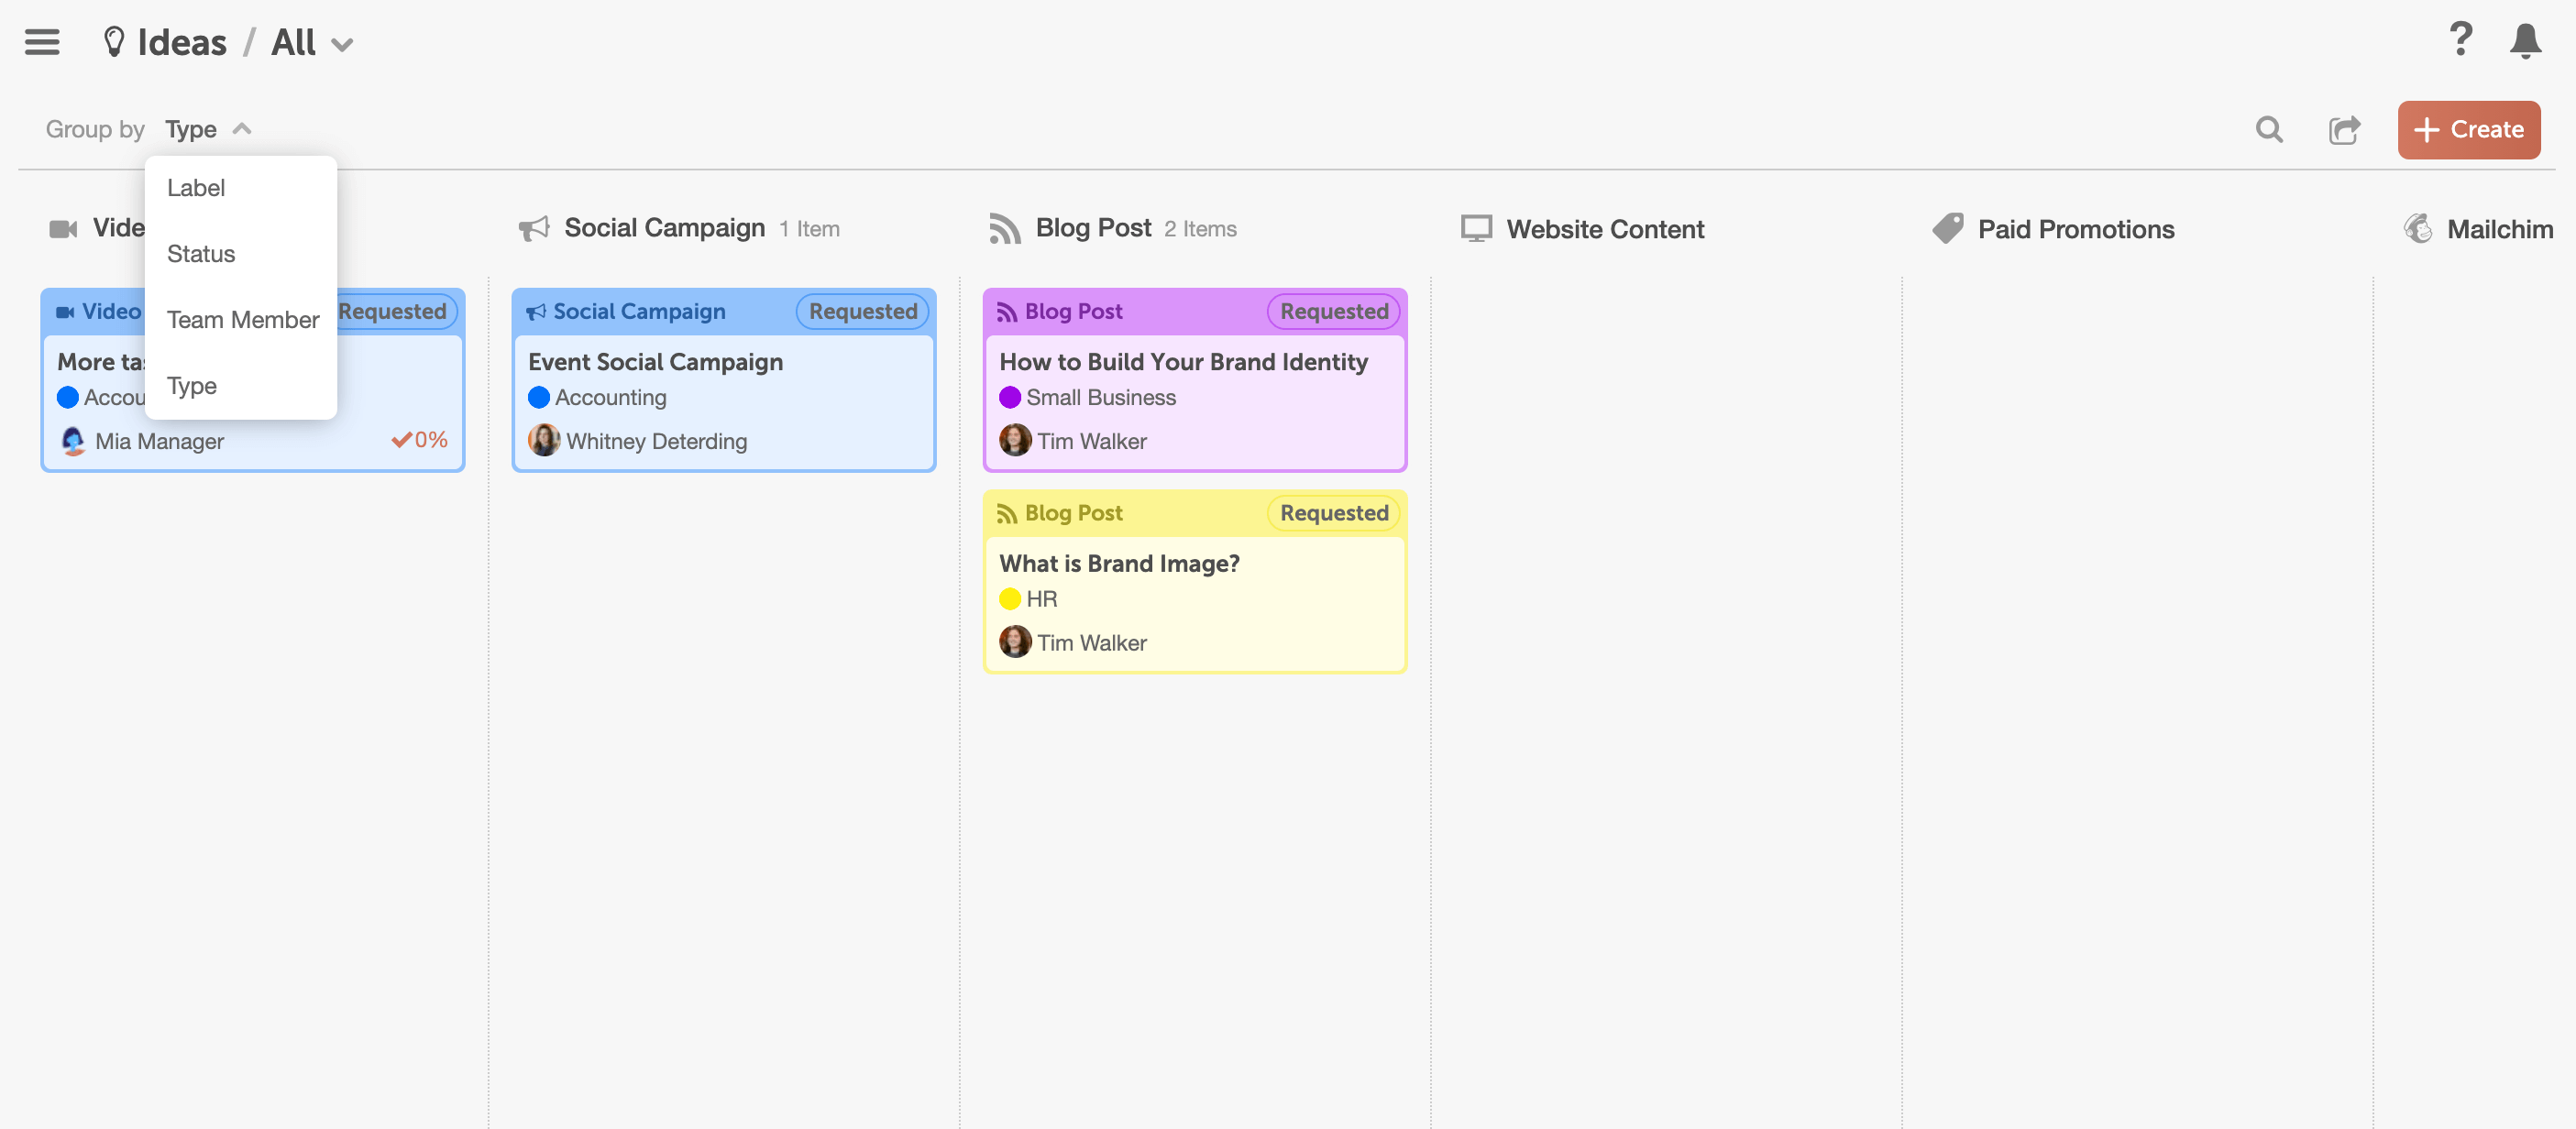 CoSchedule Idea Board